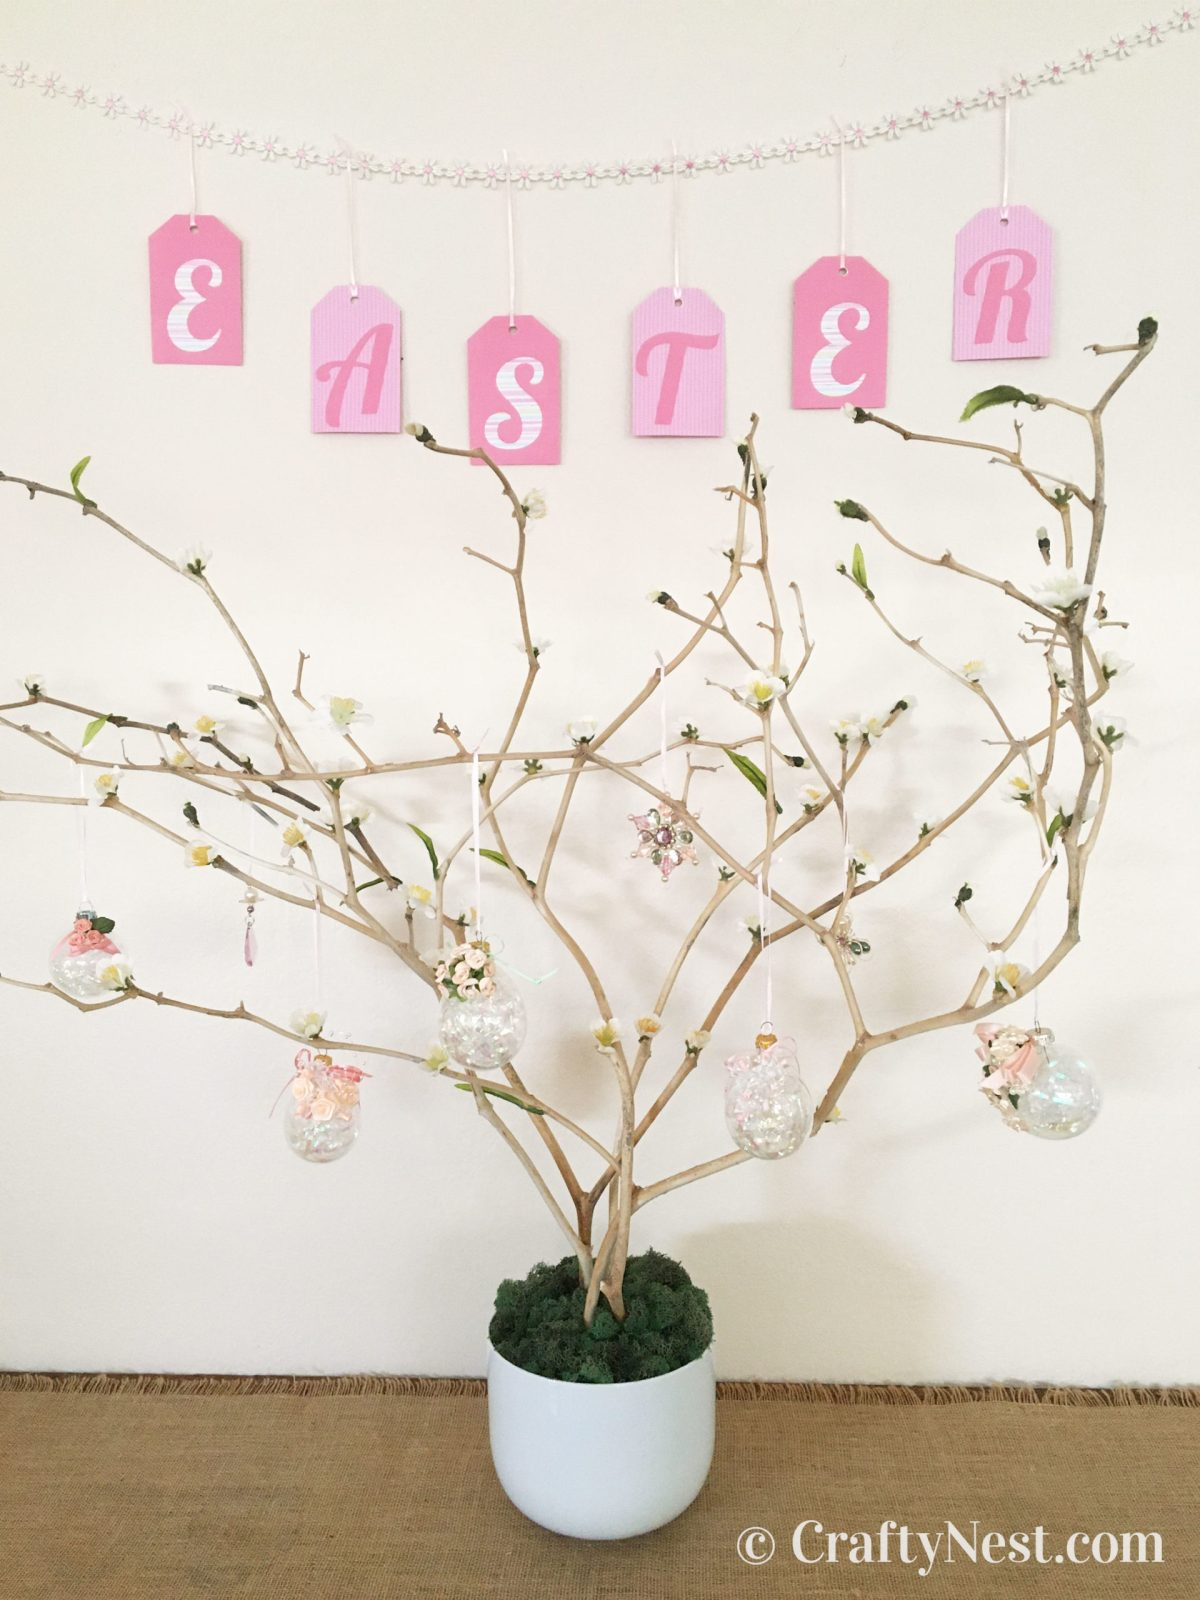 Easter tree in a pot with garland hanging above, photo